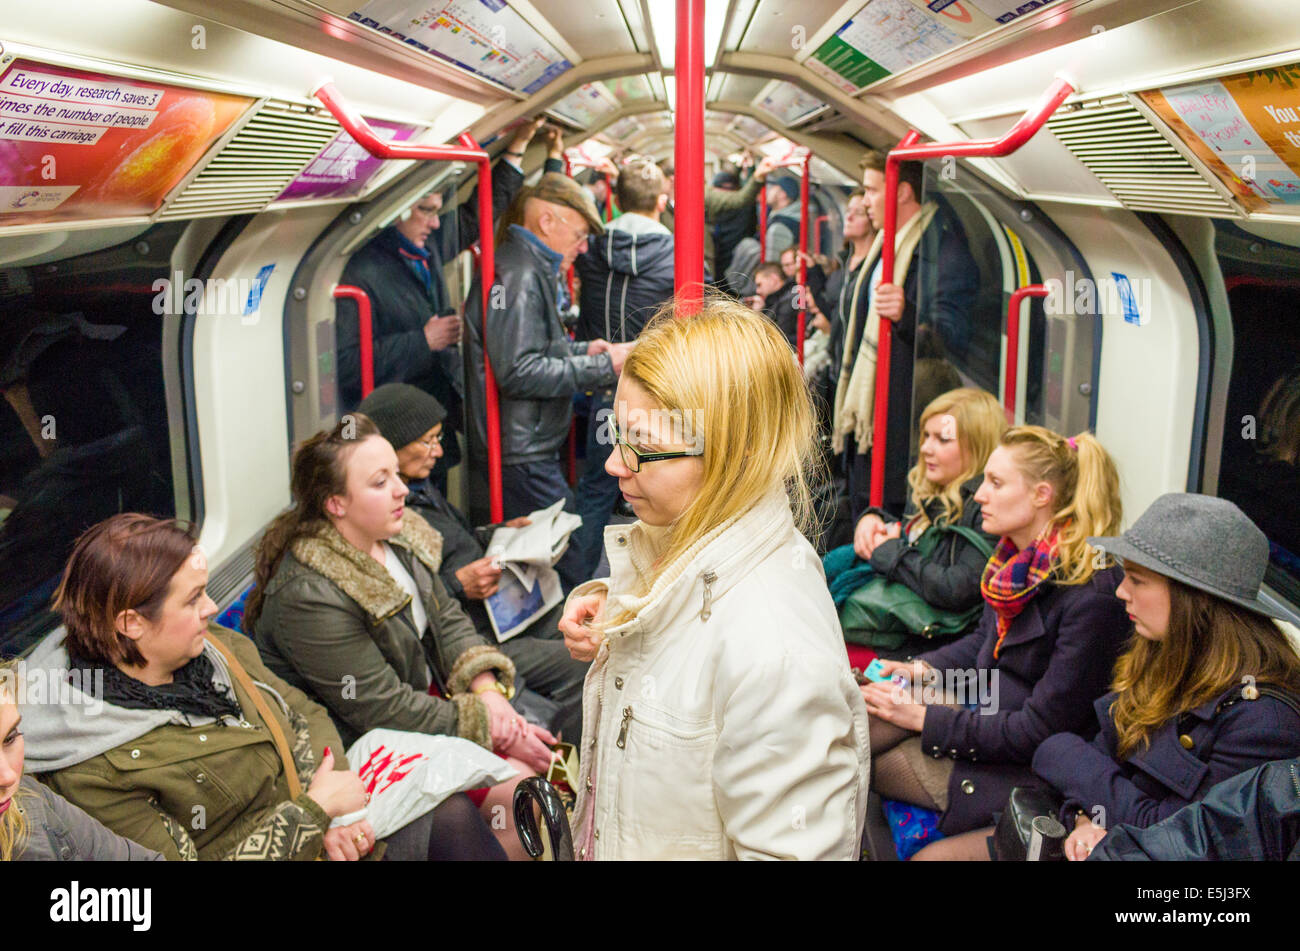 Passengers on Central Line carriage of London Underground train, England, UK - Stock Image